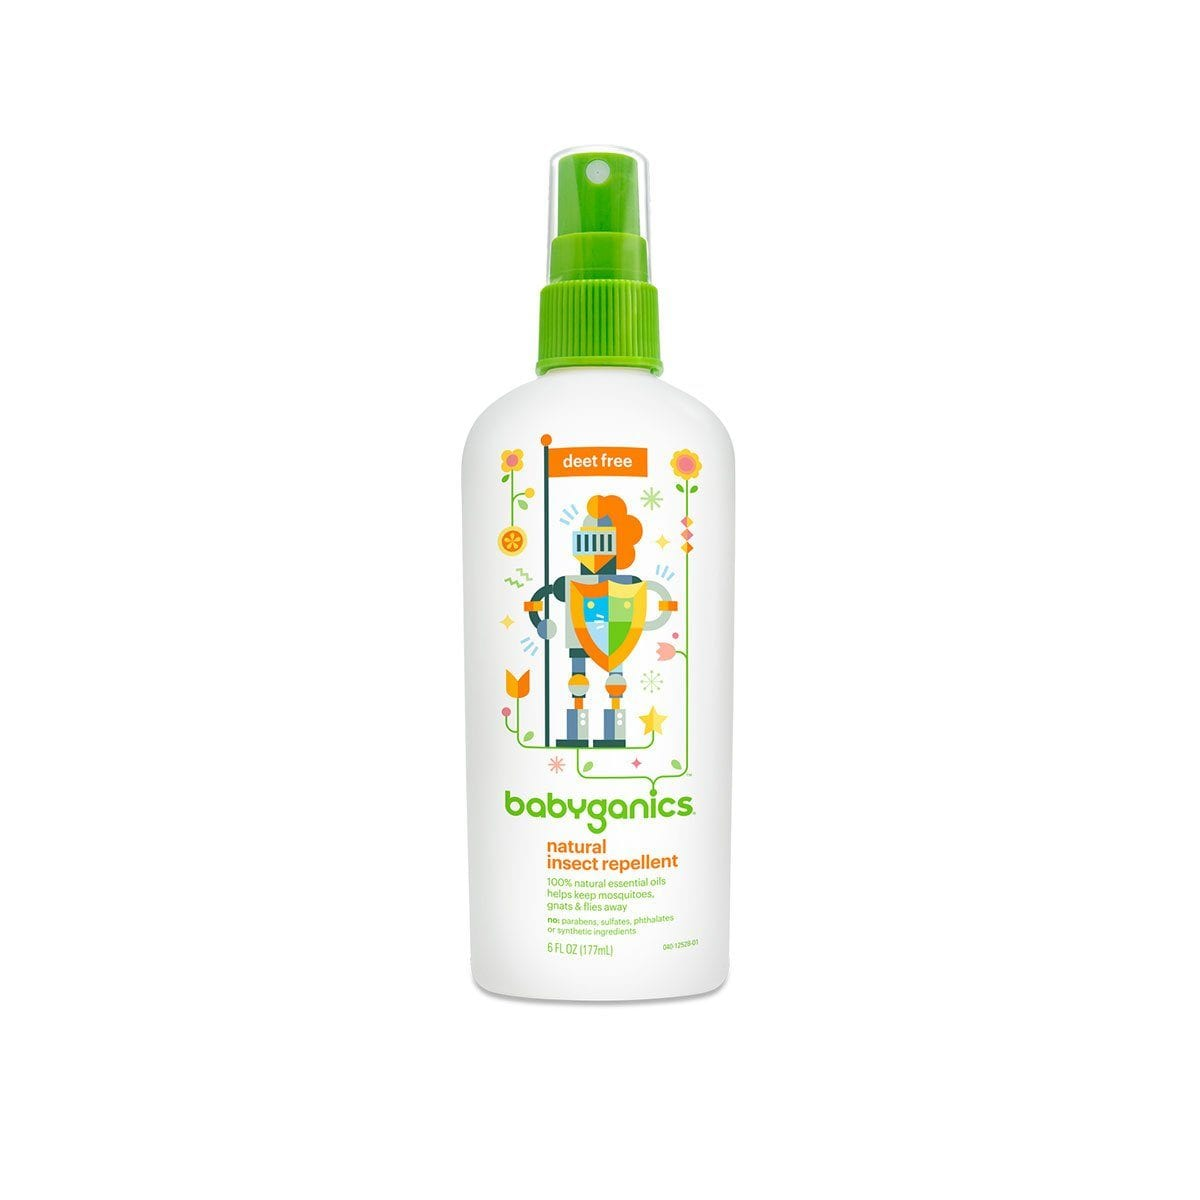 Babyganics Bug Spray - huggle